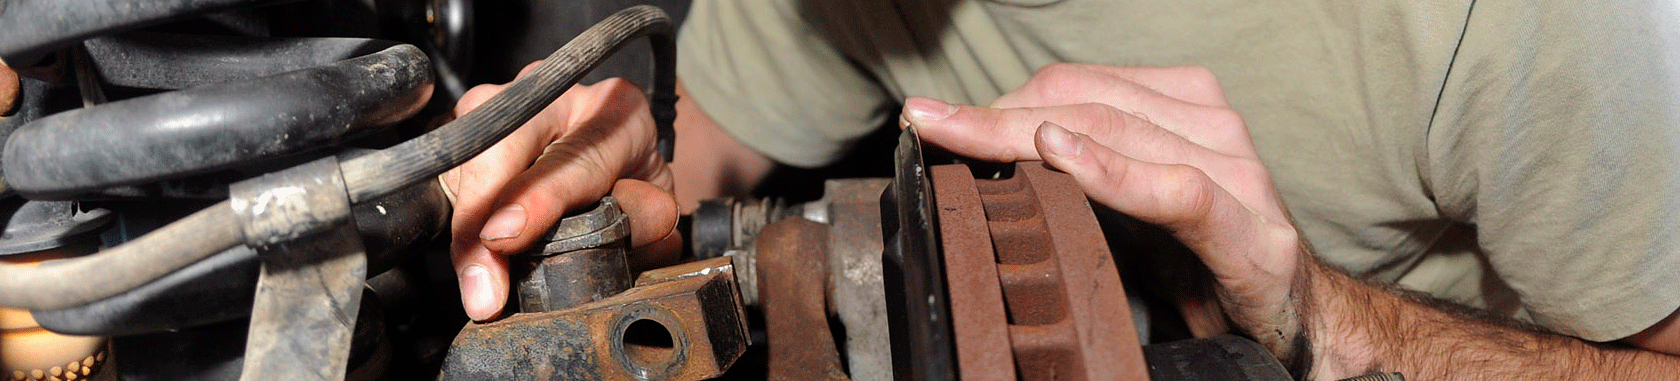 Hands working on automobile suspension